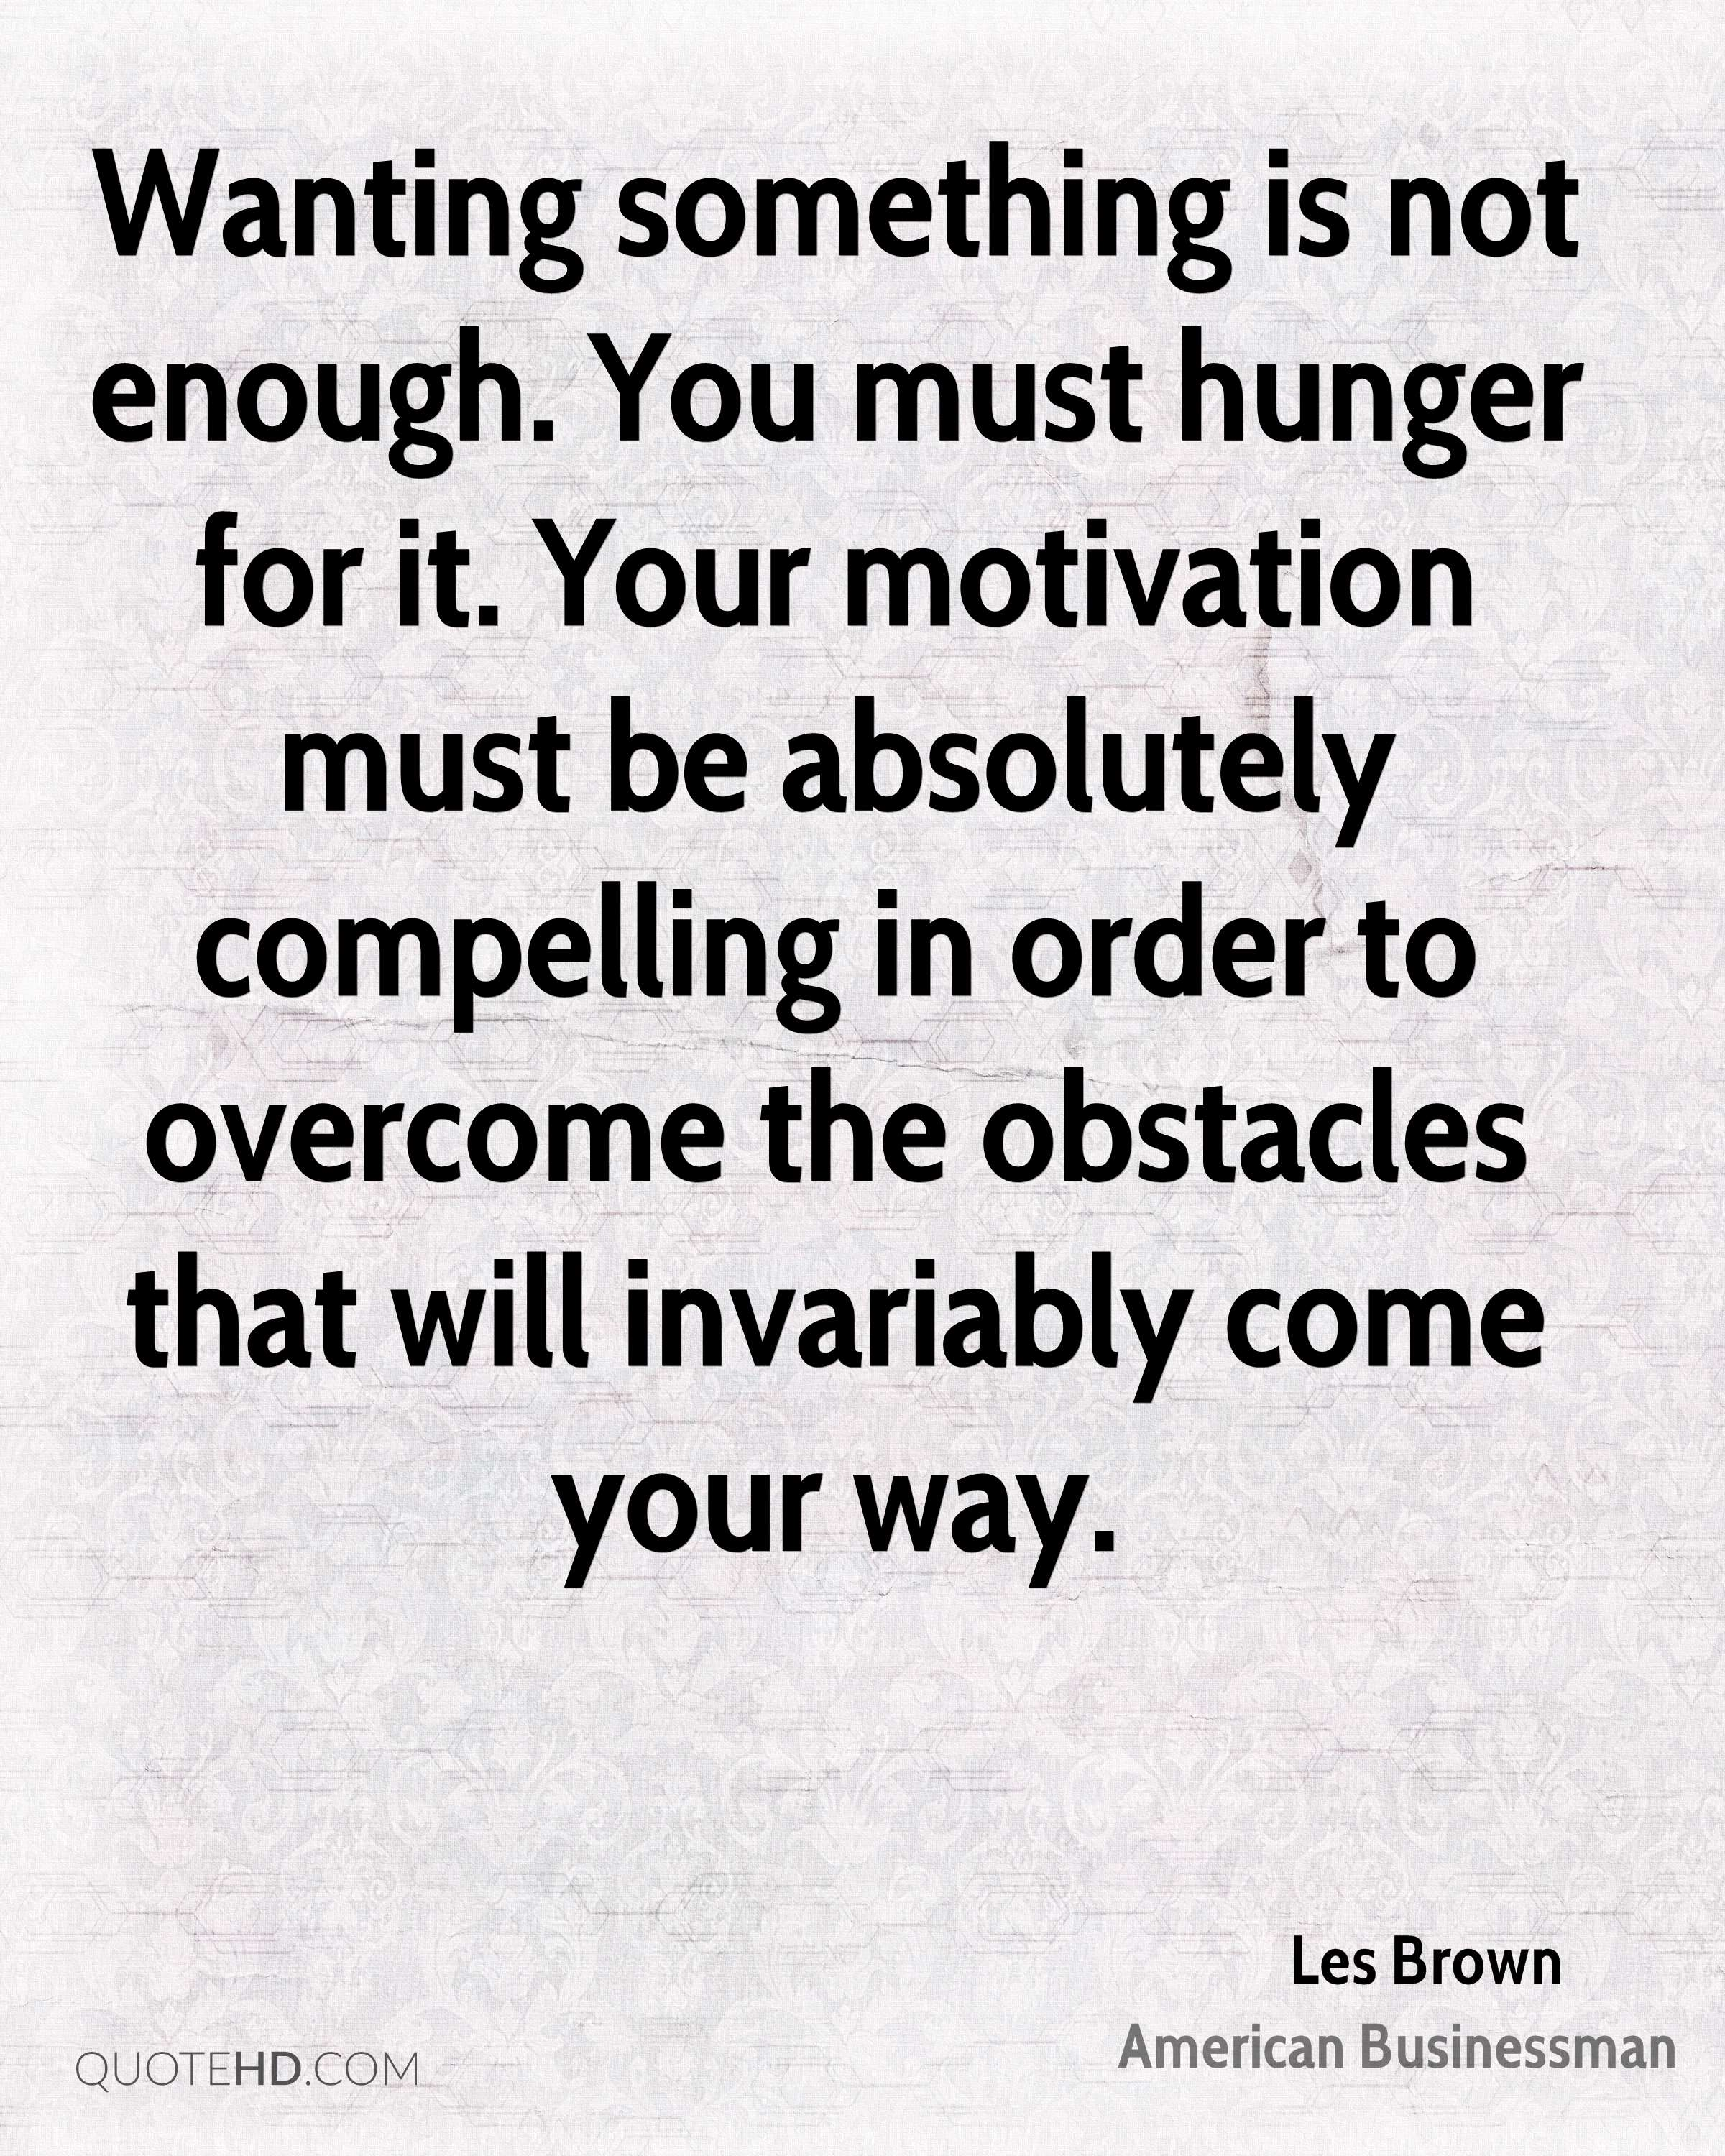 Wanting something is not enough. You must hunger for it. Your motivation must be absolutely compelling in order to overcome the obstacles that will invariably come your way.